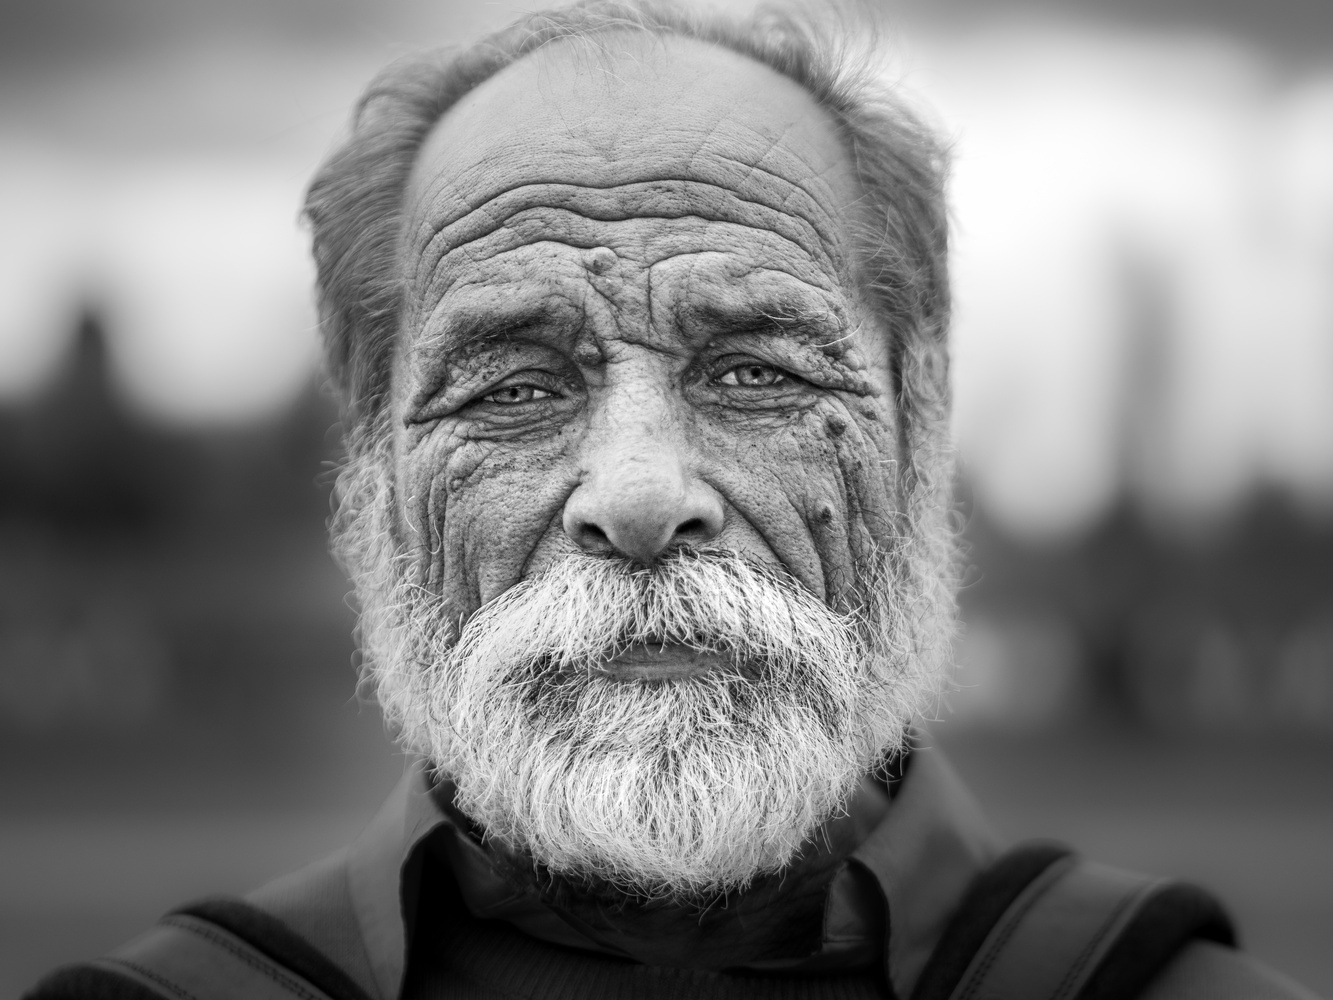 Street portrait of a Romanian Gypsy by Tomasz Kowalski